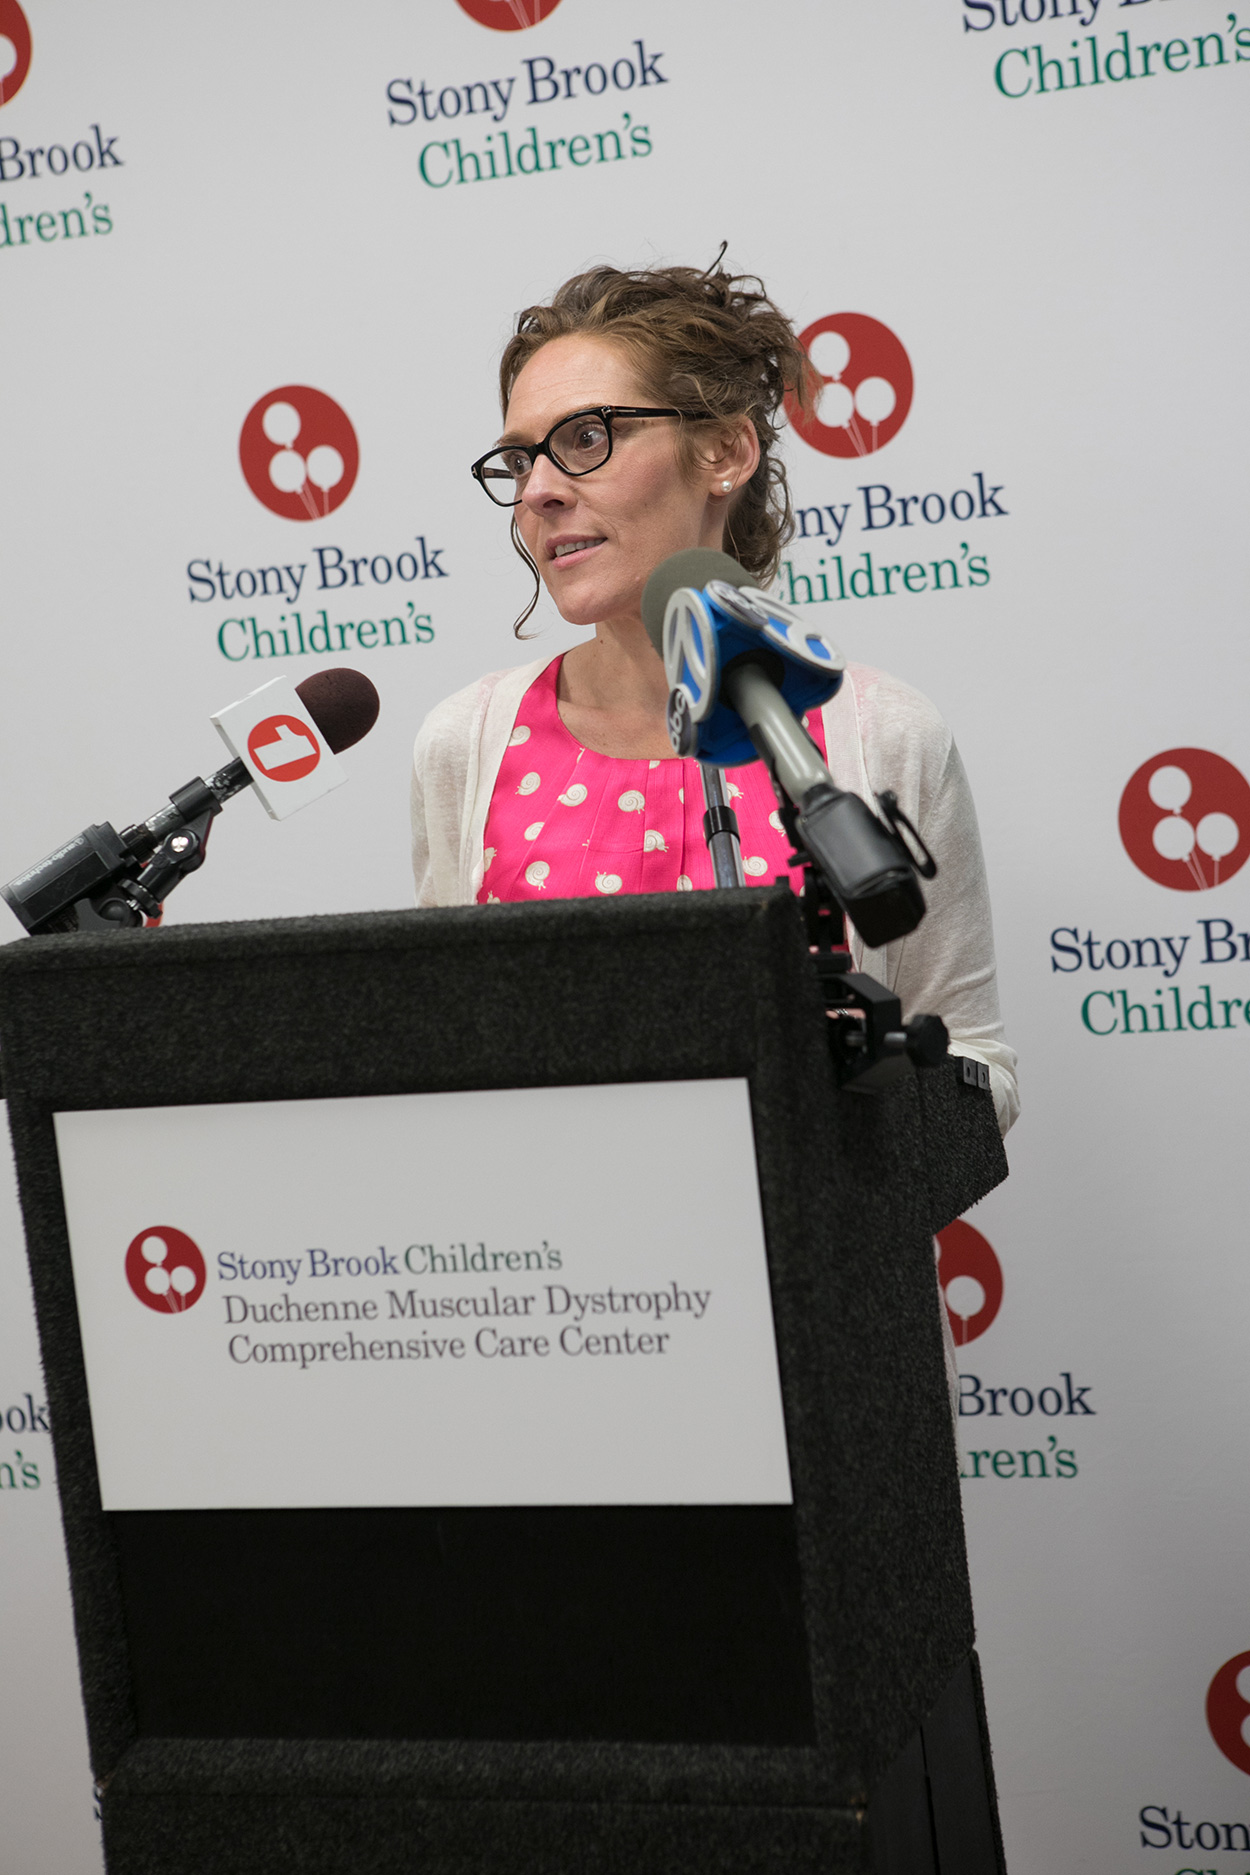 Jennifer Portnoy, Co-Founder of Hope for Javier, Javier's mother, speaks at the ribbon cutting ceremony for the Duchenne Muscular Dystrophy Comprehensive Care Center at Stony Brook Children's Hospital